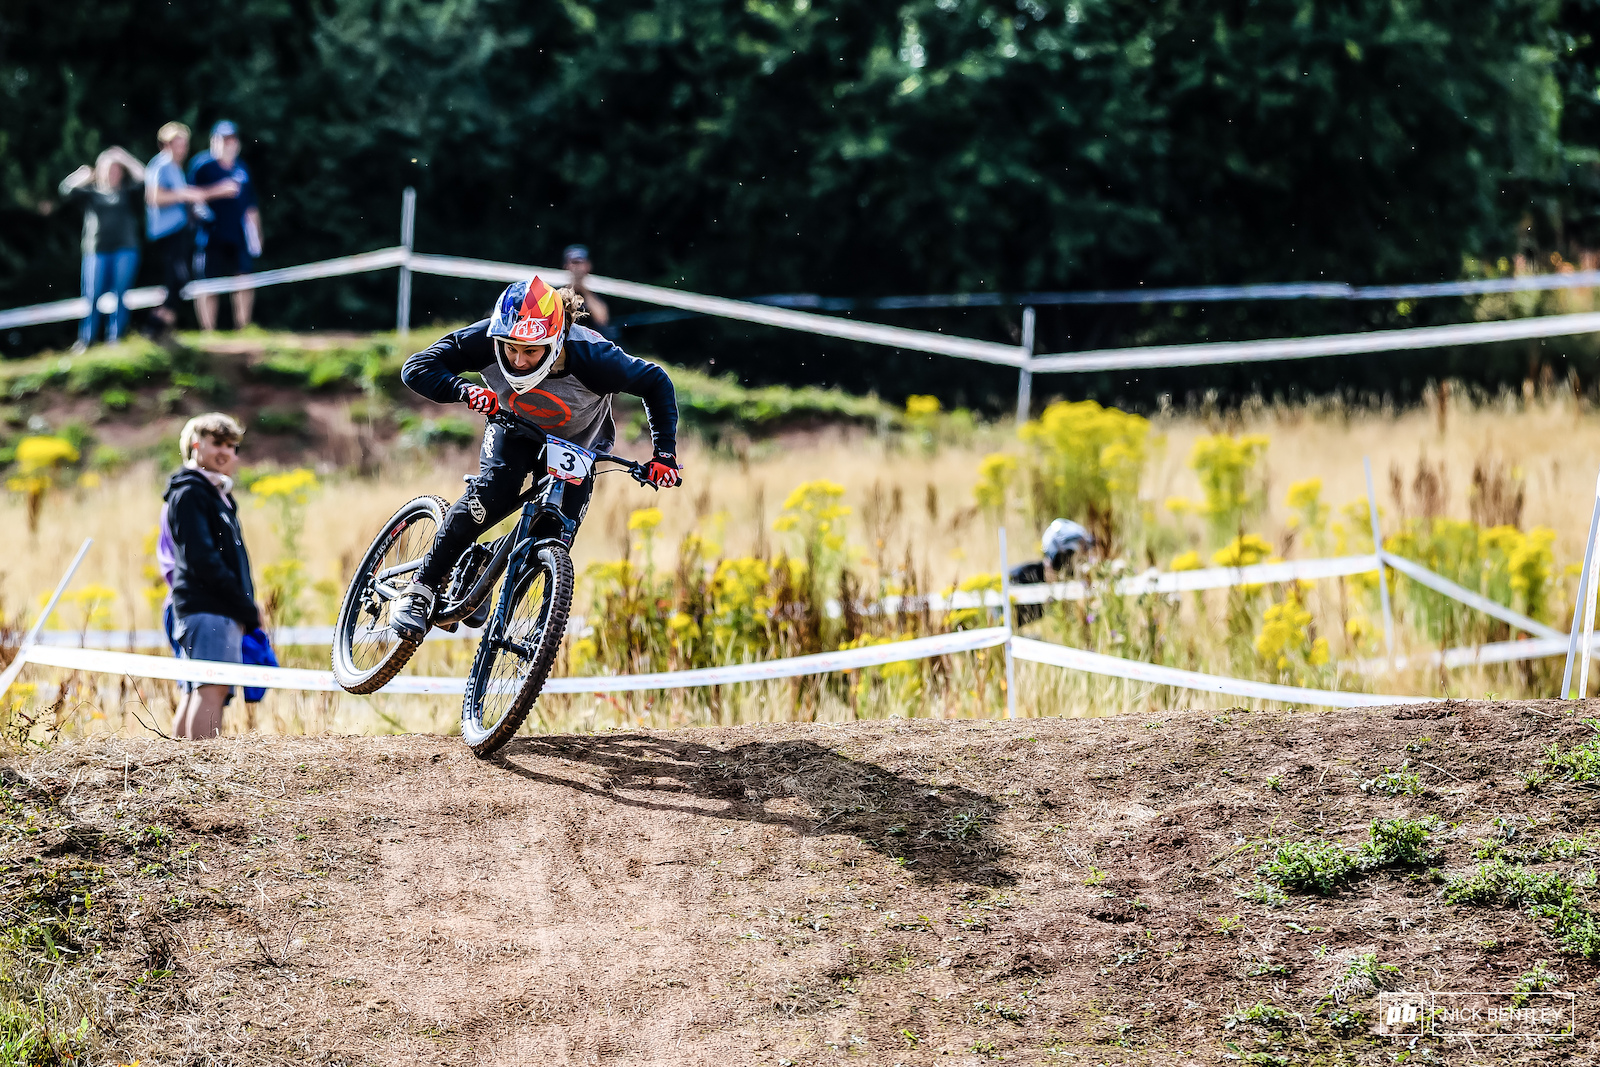 Not the ideal weekend for Dan Wagstaff with the Forest of Dean local braking his chain straight out of the gate during seeding and failing to qualify for the senior men s race. Fortunately for Dana he was still able to race in the open fun class and have some fun sending it sideways all day